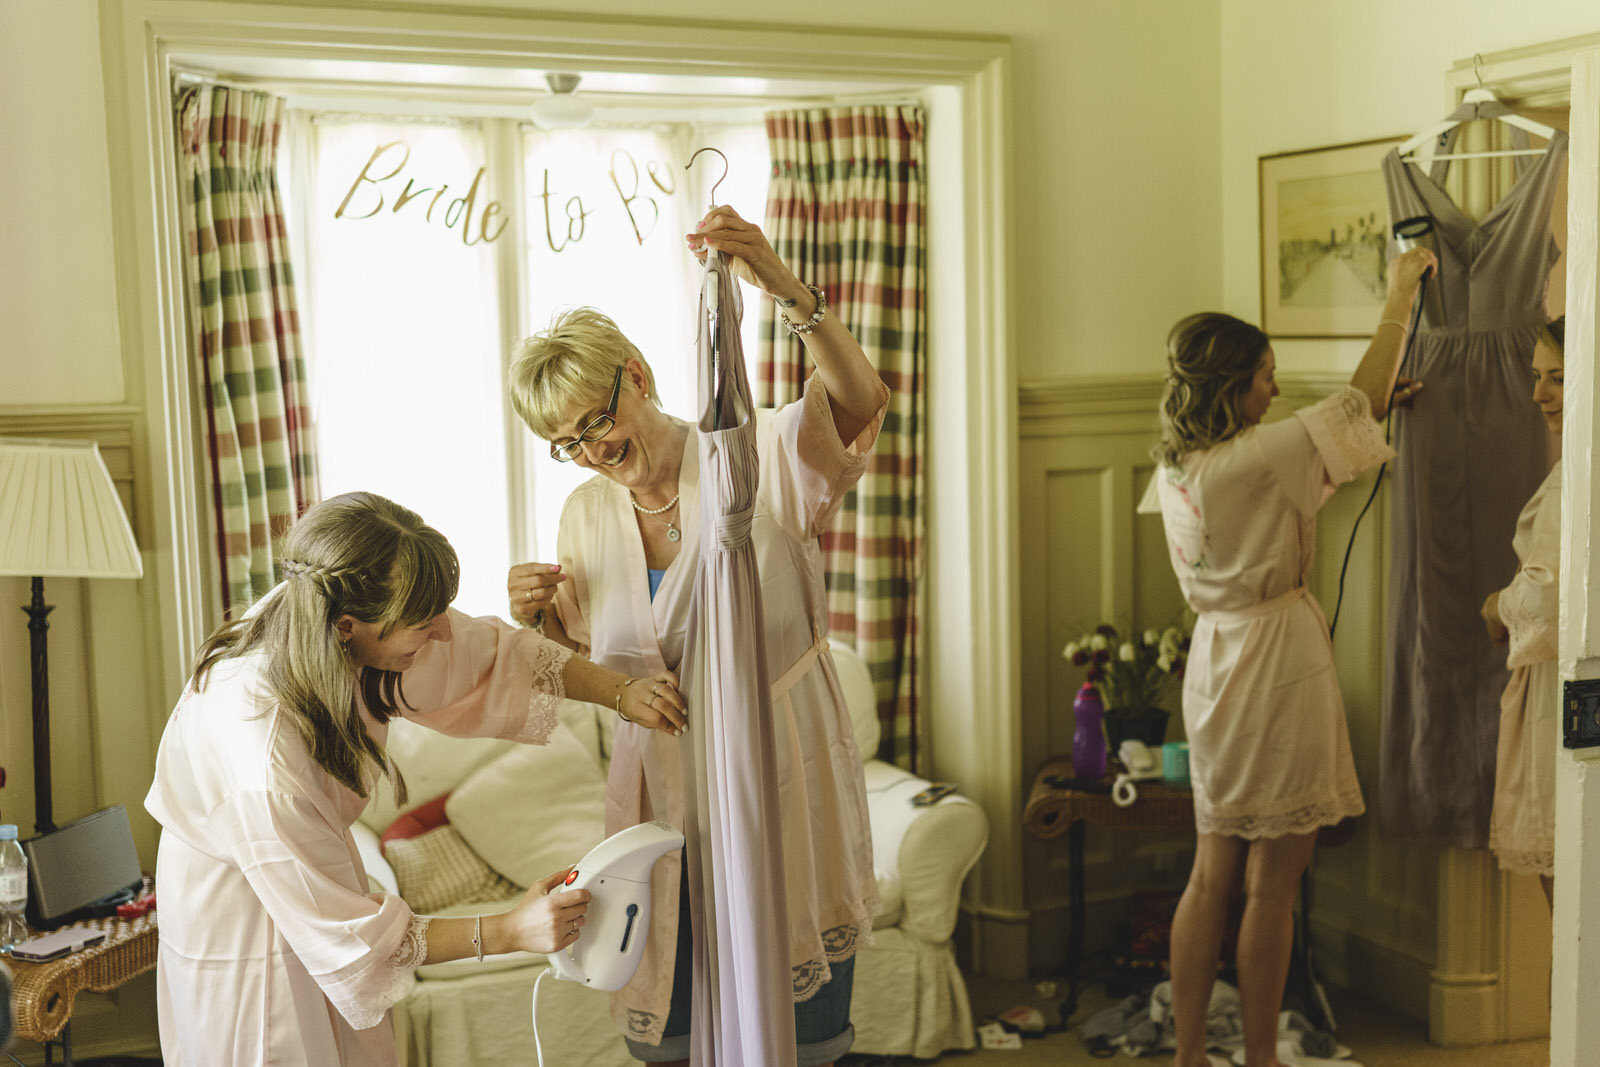 the hanging and ironing of dresses is all part of the day as the wedding preparations start